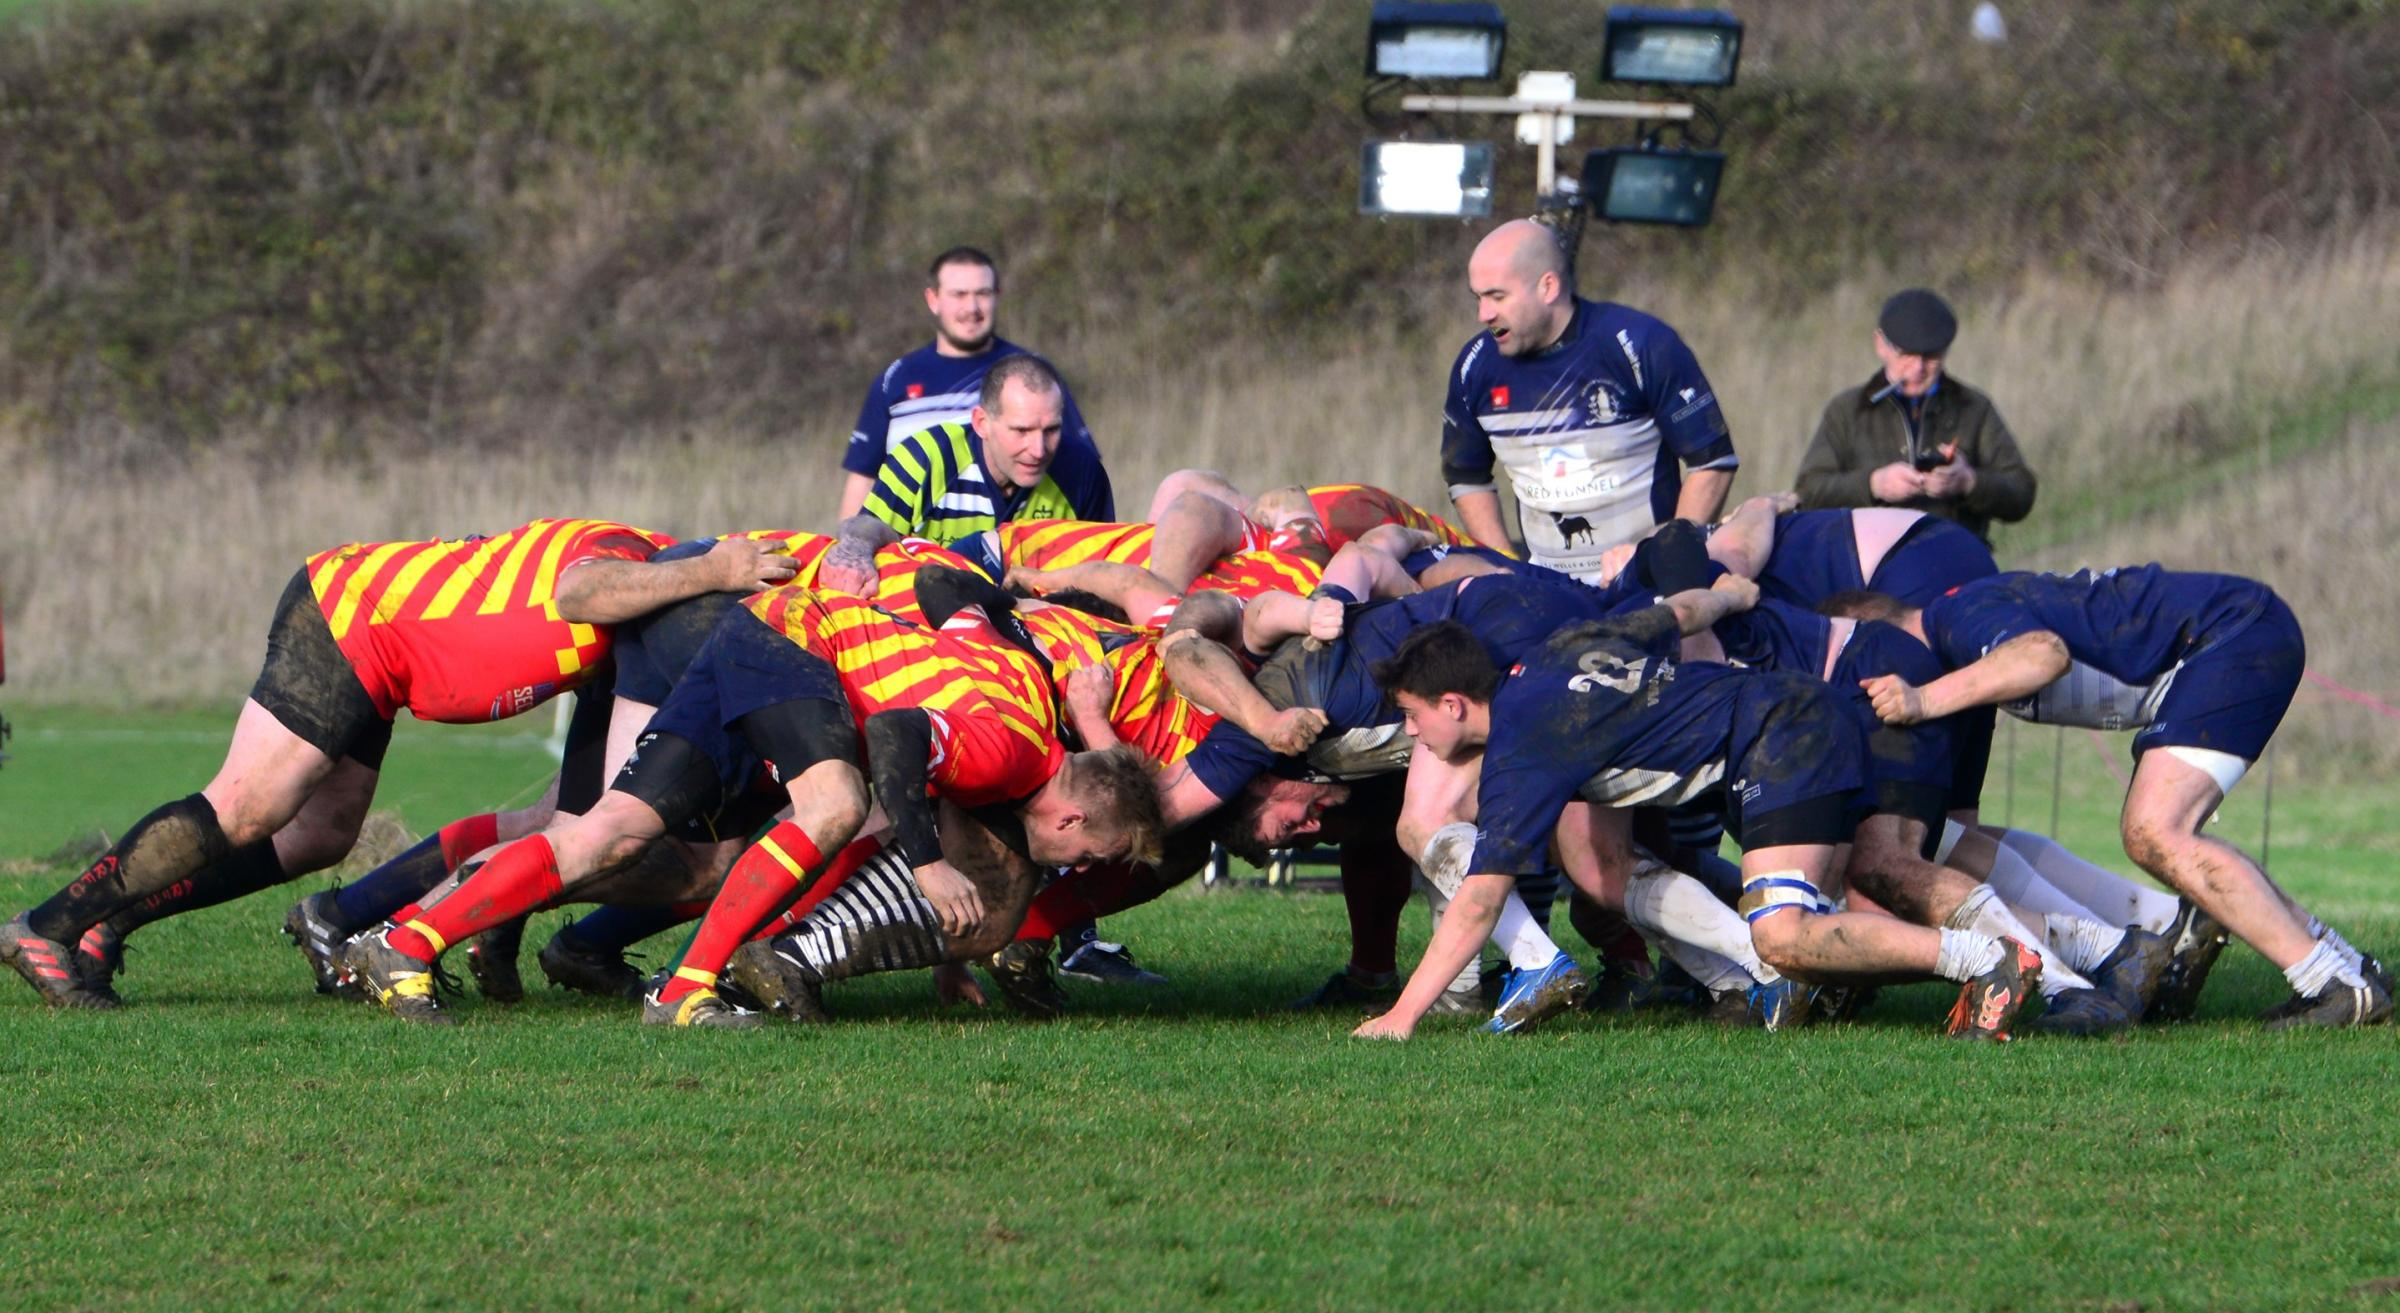 Action between Ventnor (in blue) against an Emergency Services team for the inaugural Martin Poynter Cup clash at Watcombe Bottom yesterday.  Photos: Paul Blackley